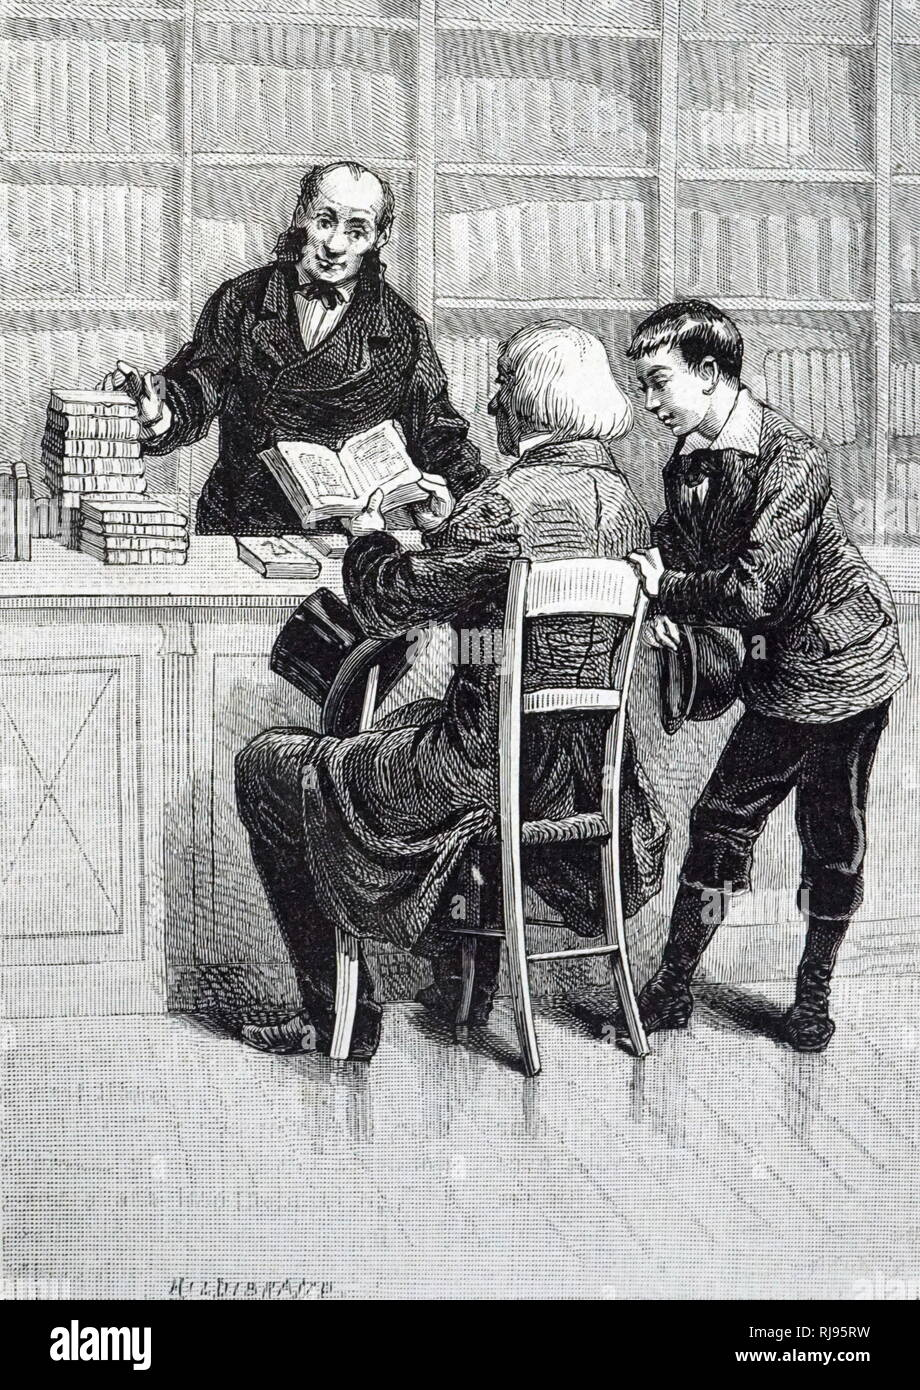 An engraving depicting a bookseller with a customer. Dated 19th century - Stock Image